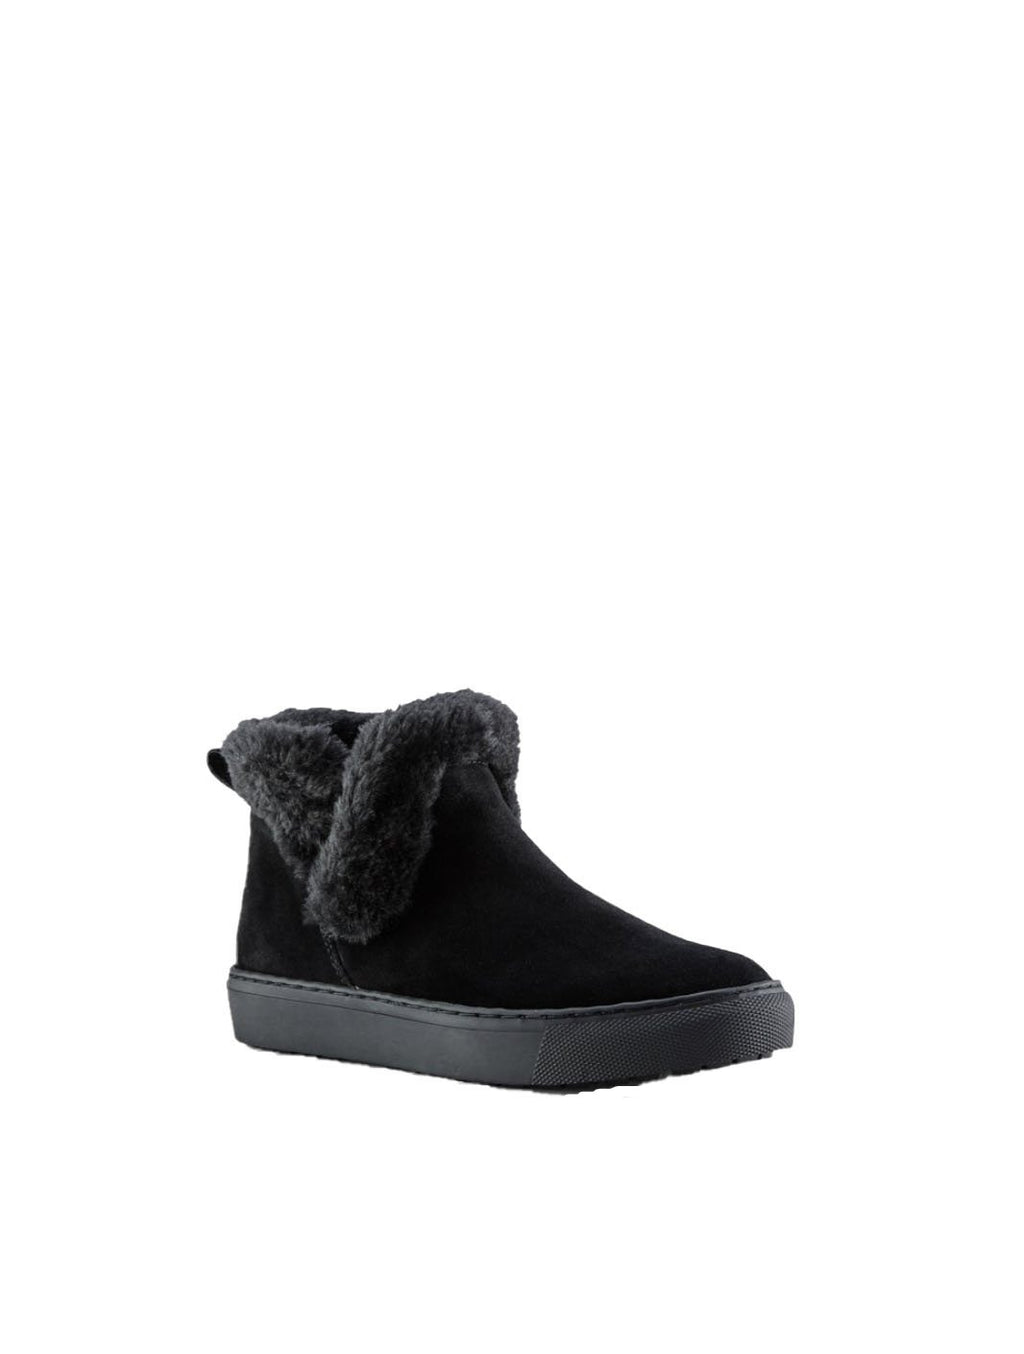 Cougar Duffy Winter Sneaker in Black